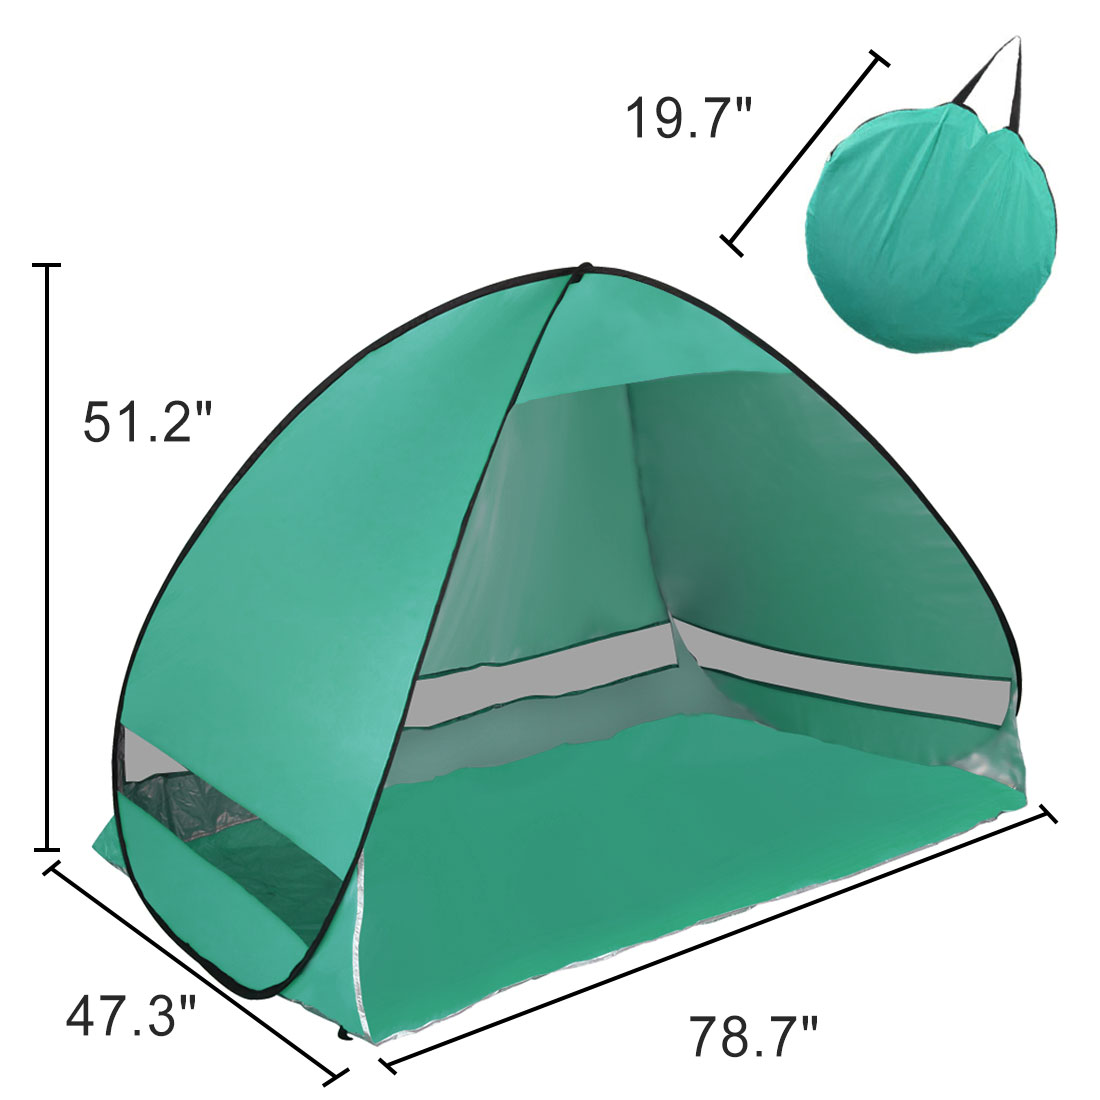 Portable Pop Up Beach Tent Sun Shade UV 50+ Protection Canopy Outdoor Automatic Instant Tent Sun Shelters - Walmart.com  sc 1 st  Walmart : portable beach tent - memphite.com